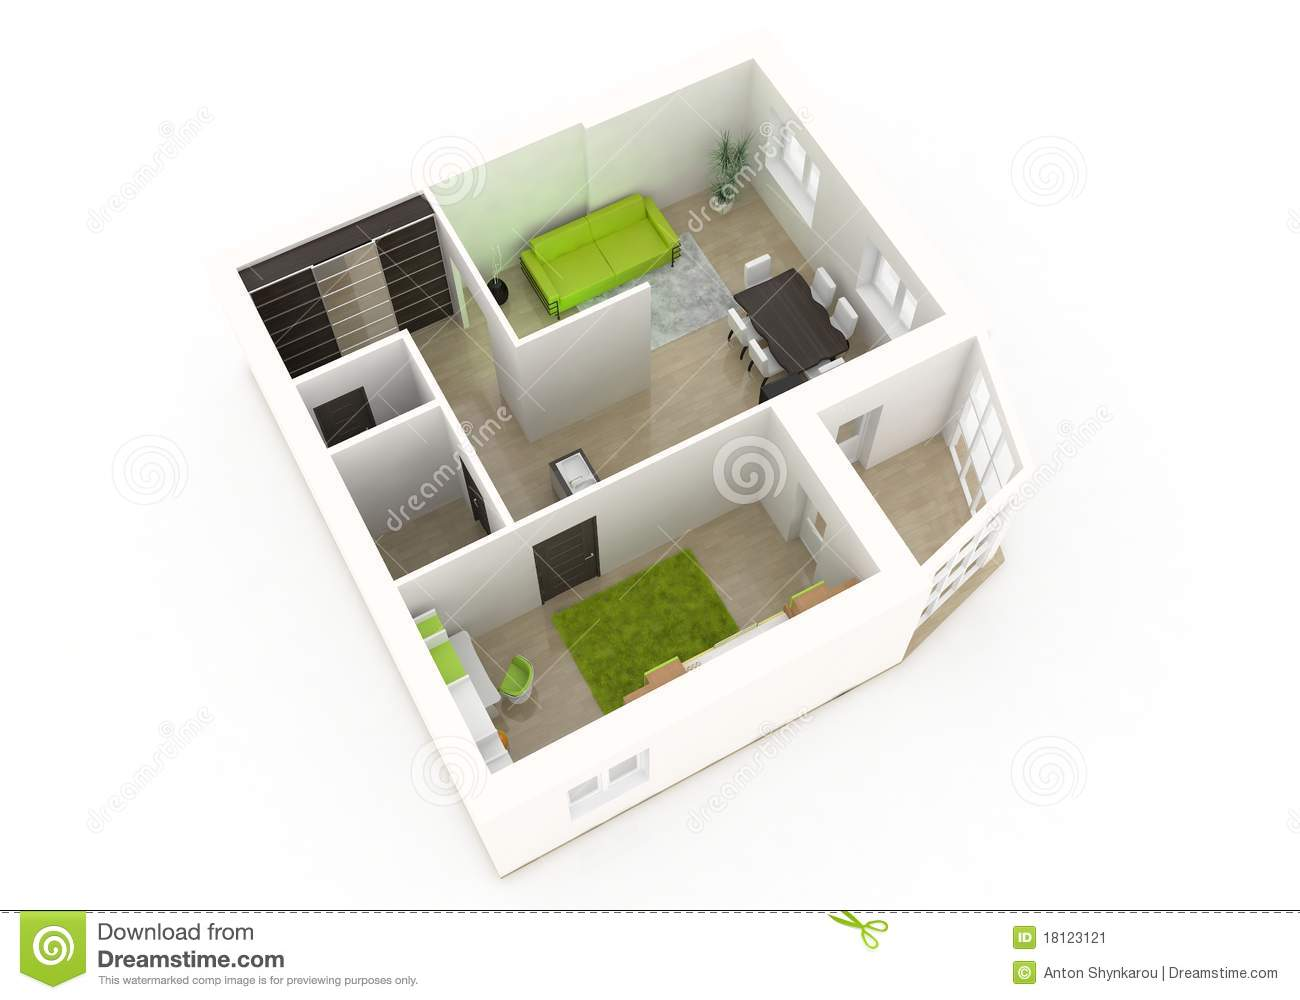 3d Interior Design Stock Image - Image: 18123121 - ^